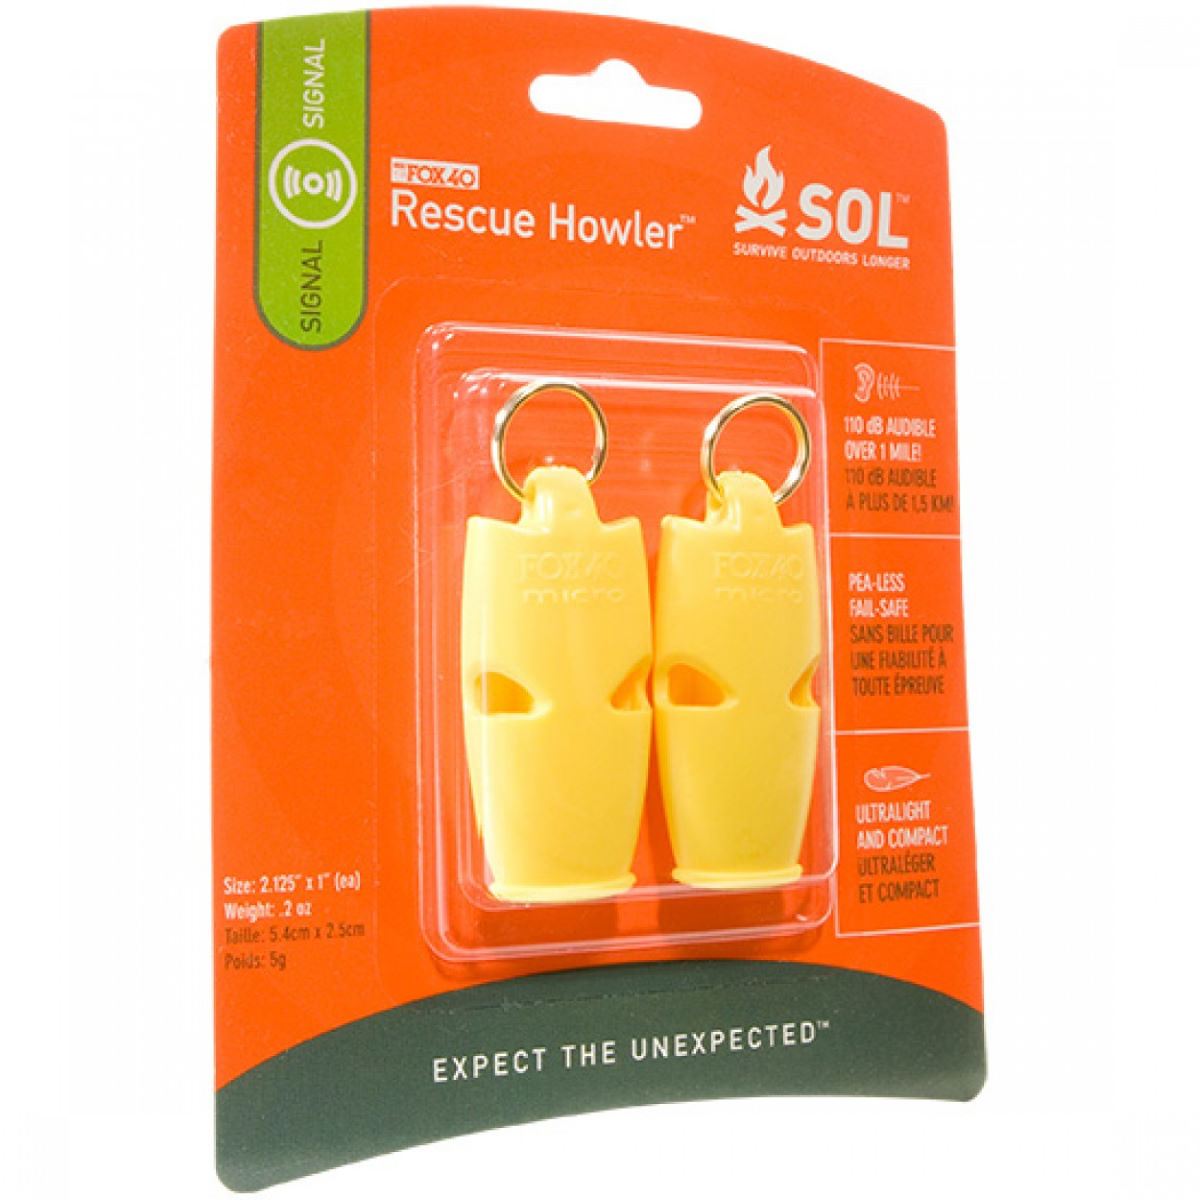 AMK Fox 40 Rescue Howler (2 Pack) - Silbatos